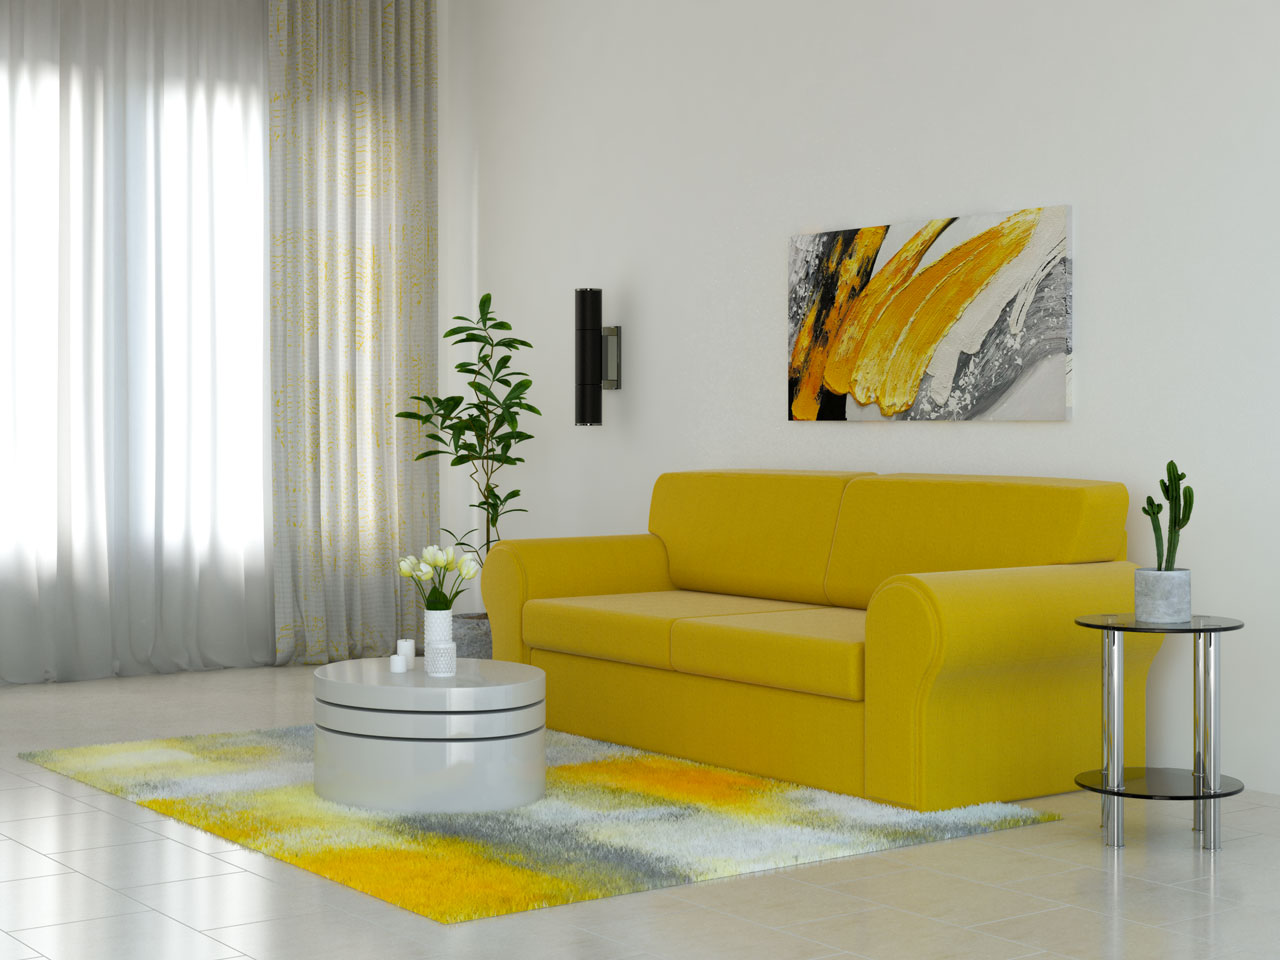 White rug with yellow accents